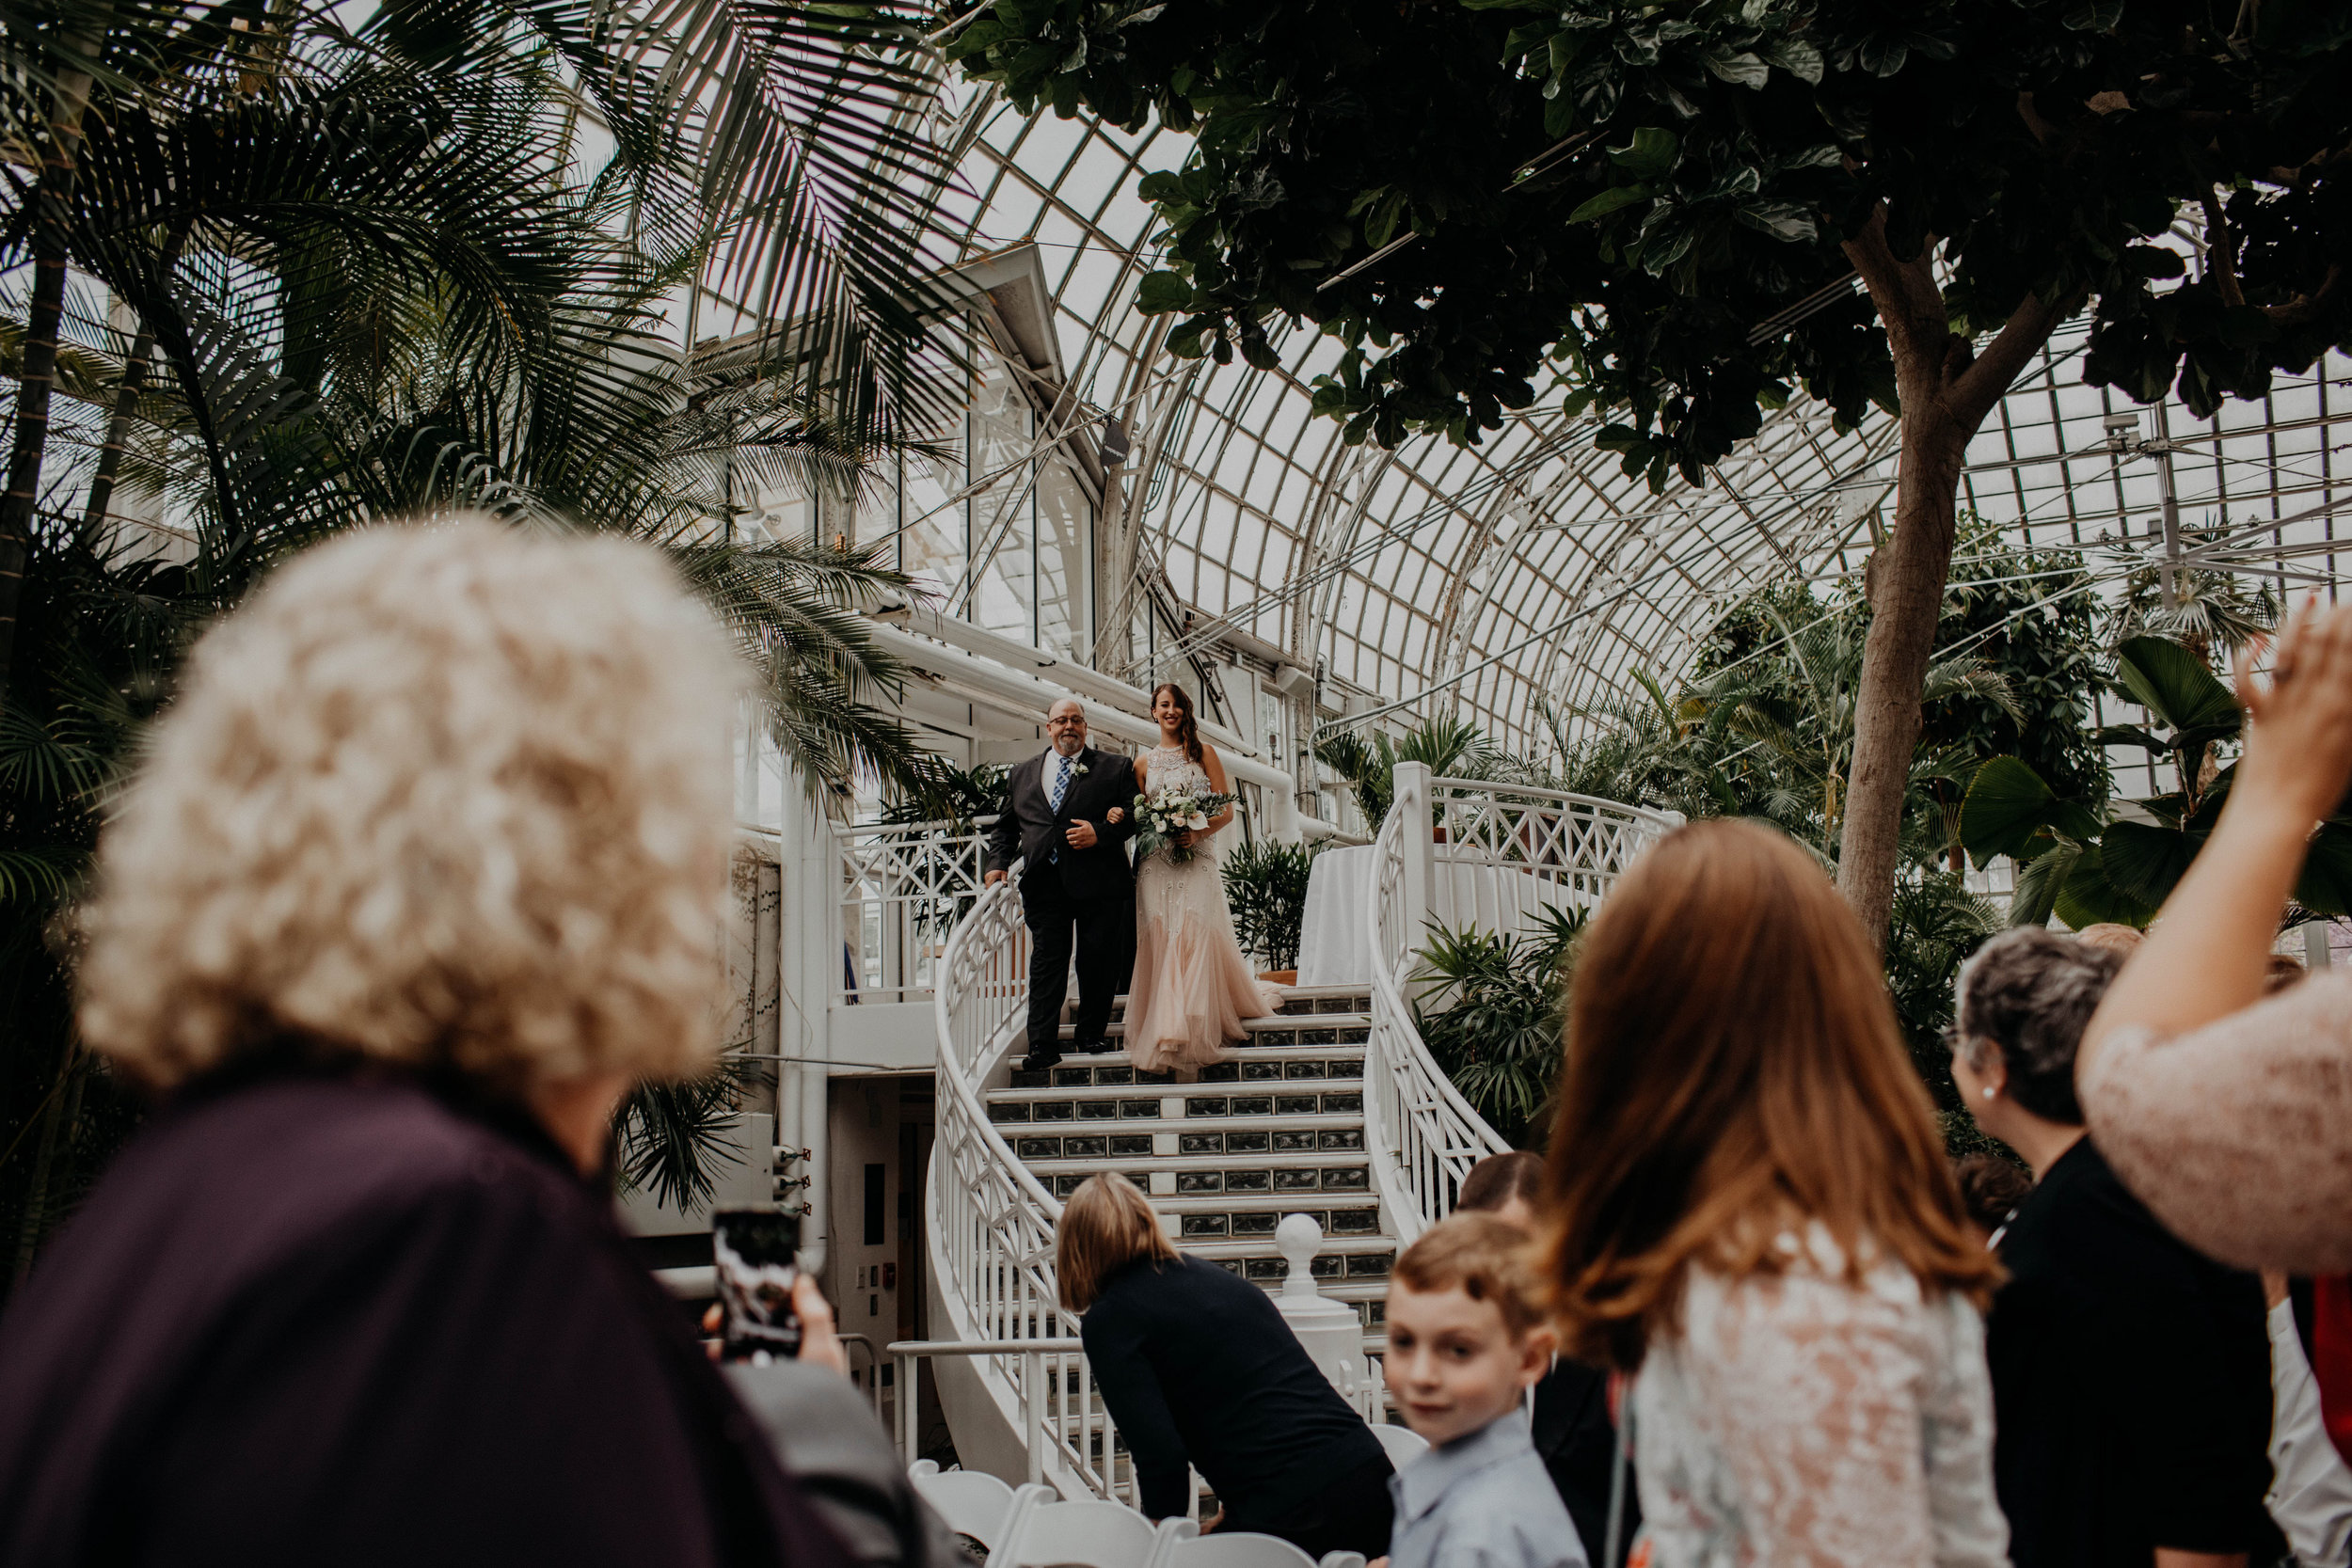 franklin park conservatory wedding columbus ohio wedding photographer grace e jones photography255.jpg